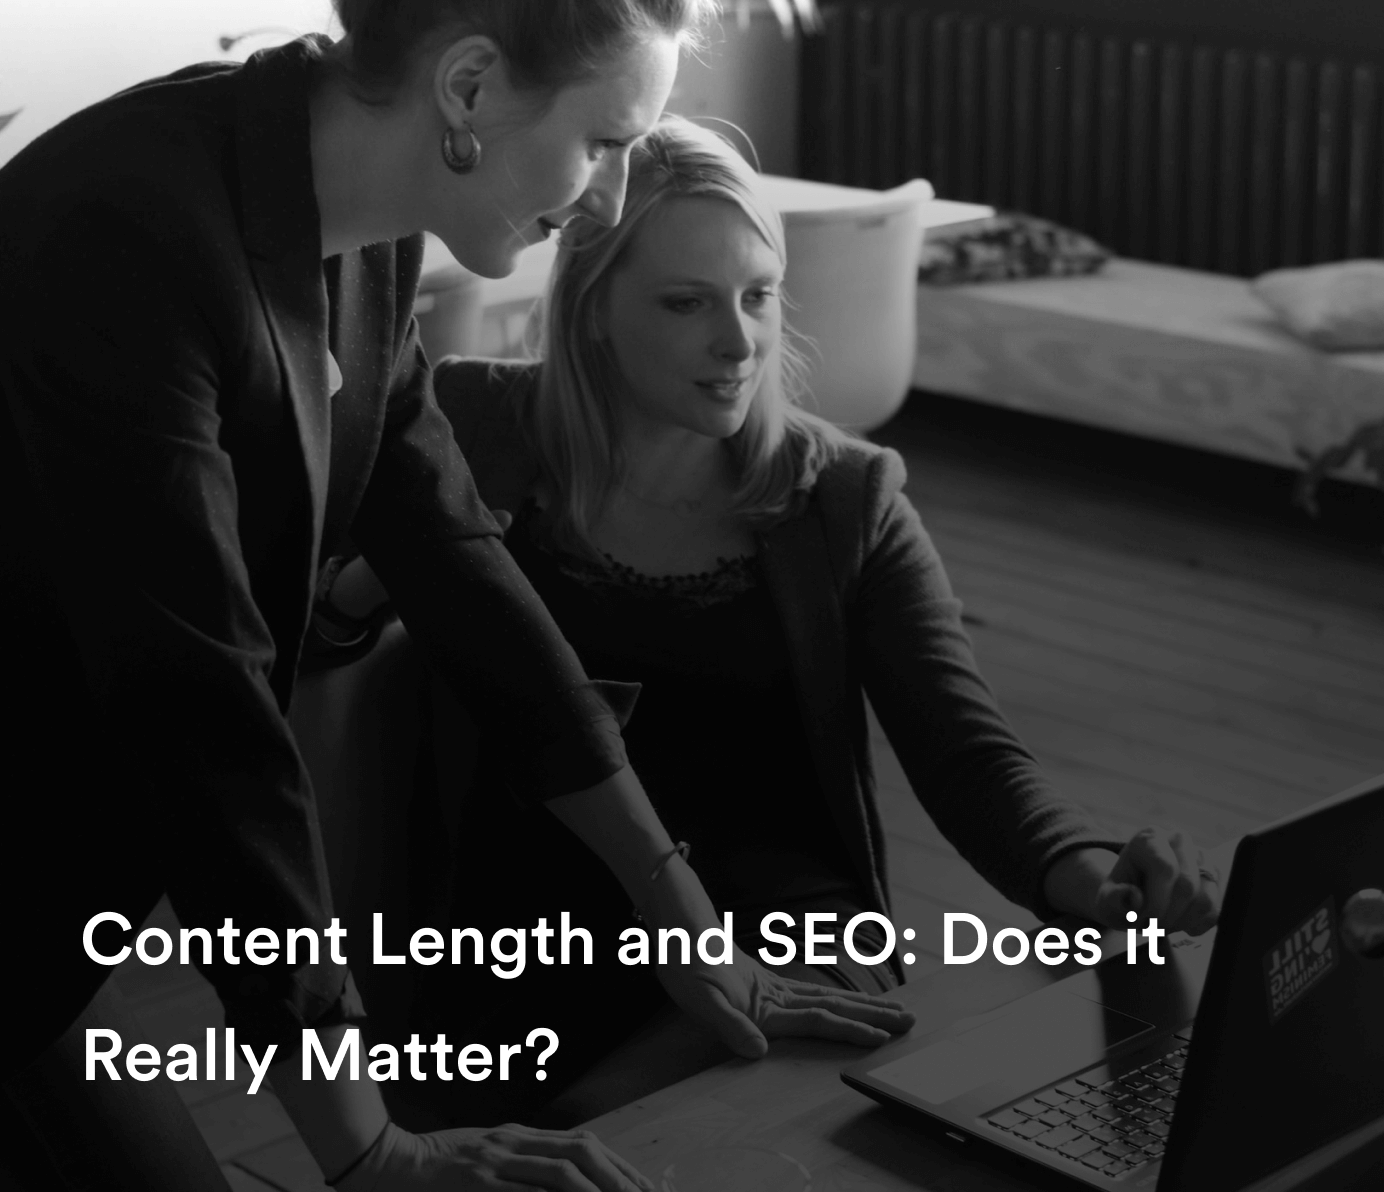 Content Length and SEO: Does it Really Matter?